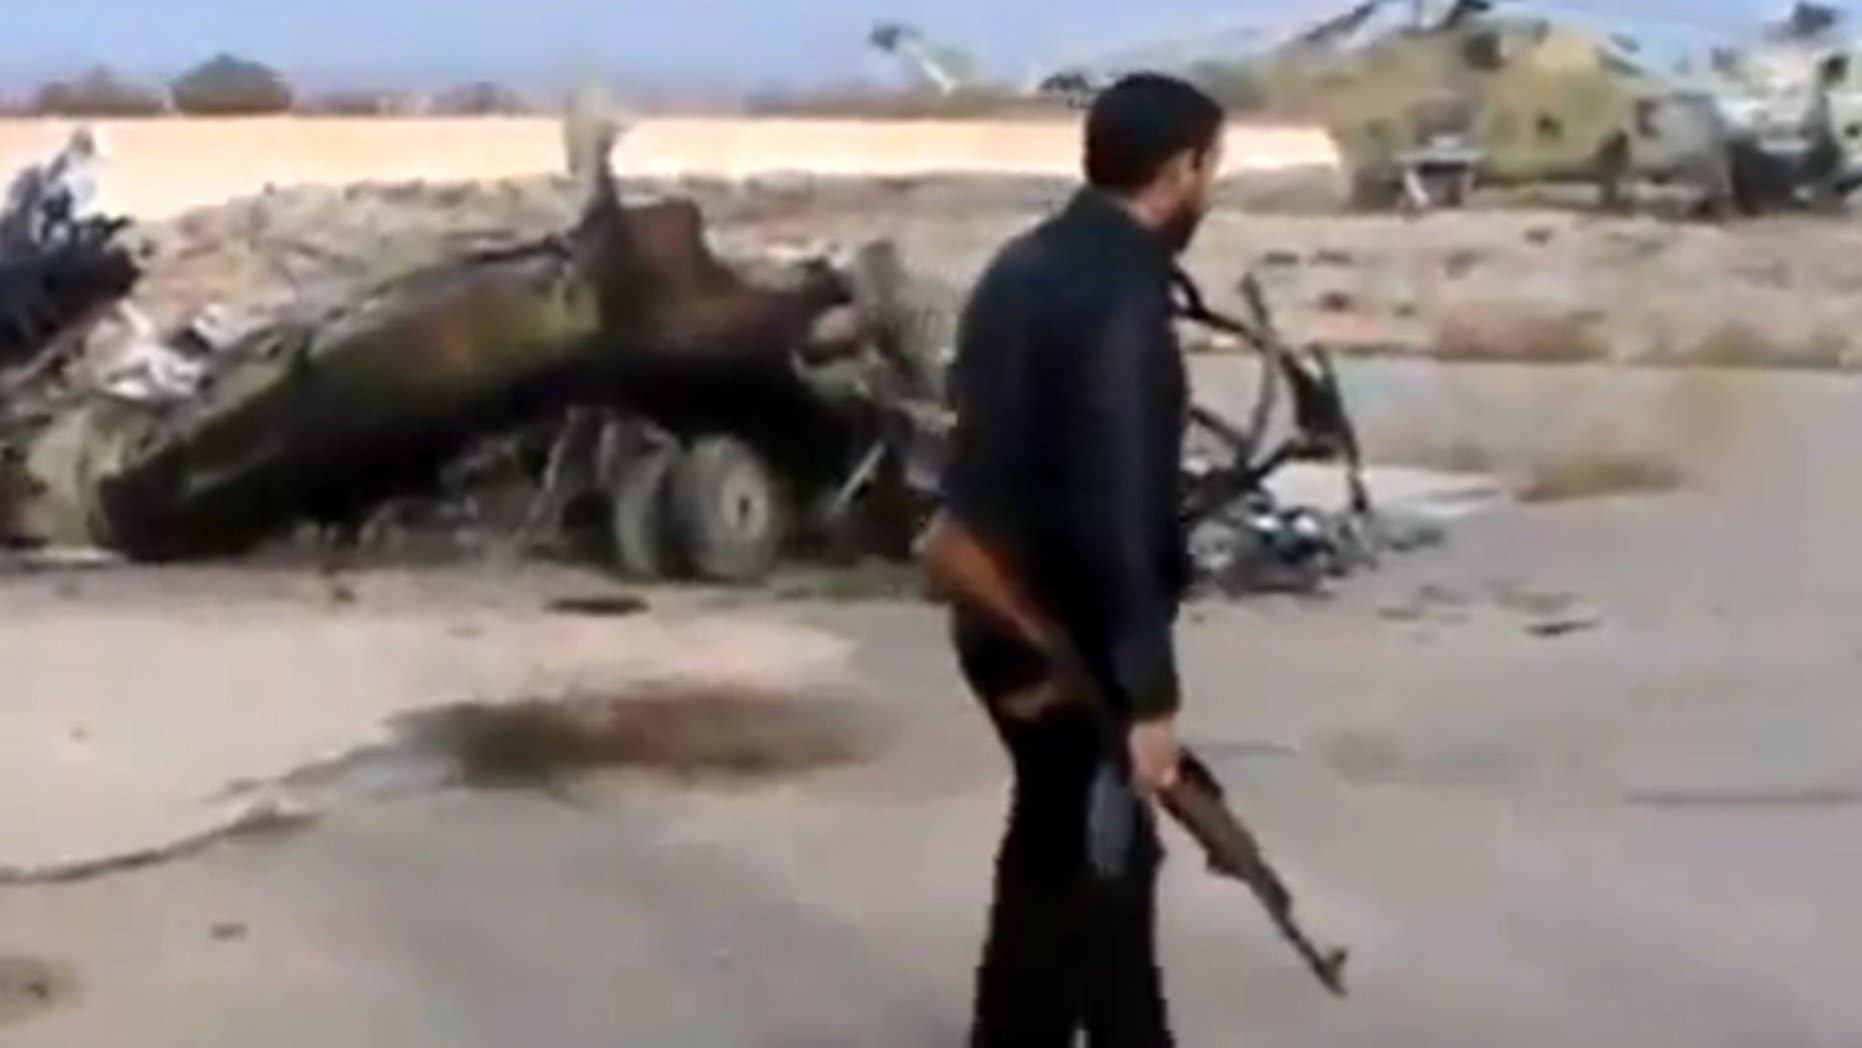 Nov. 25, 2012 -  Image taken from video obtained from Ugarit News of Syrian rebels capturing a helicopter air base near the capital Damascus after fierce fighting in Syria.